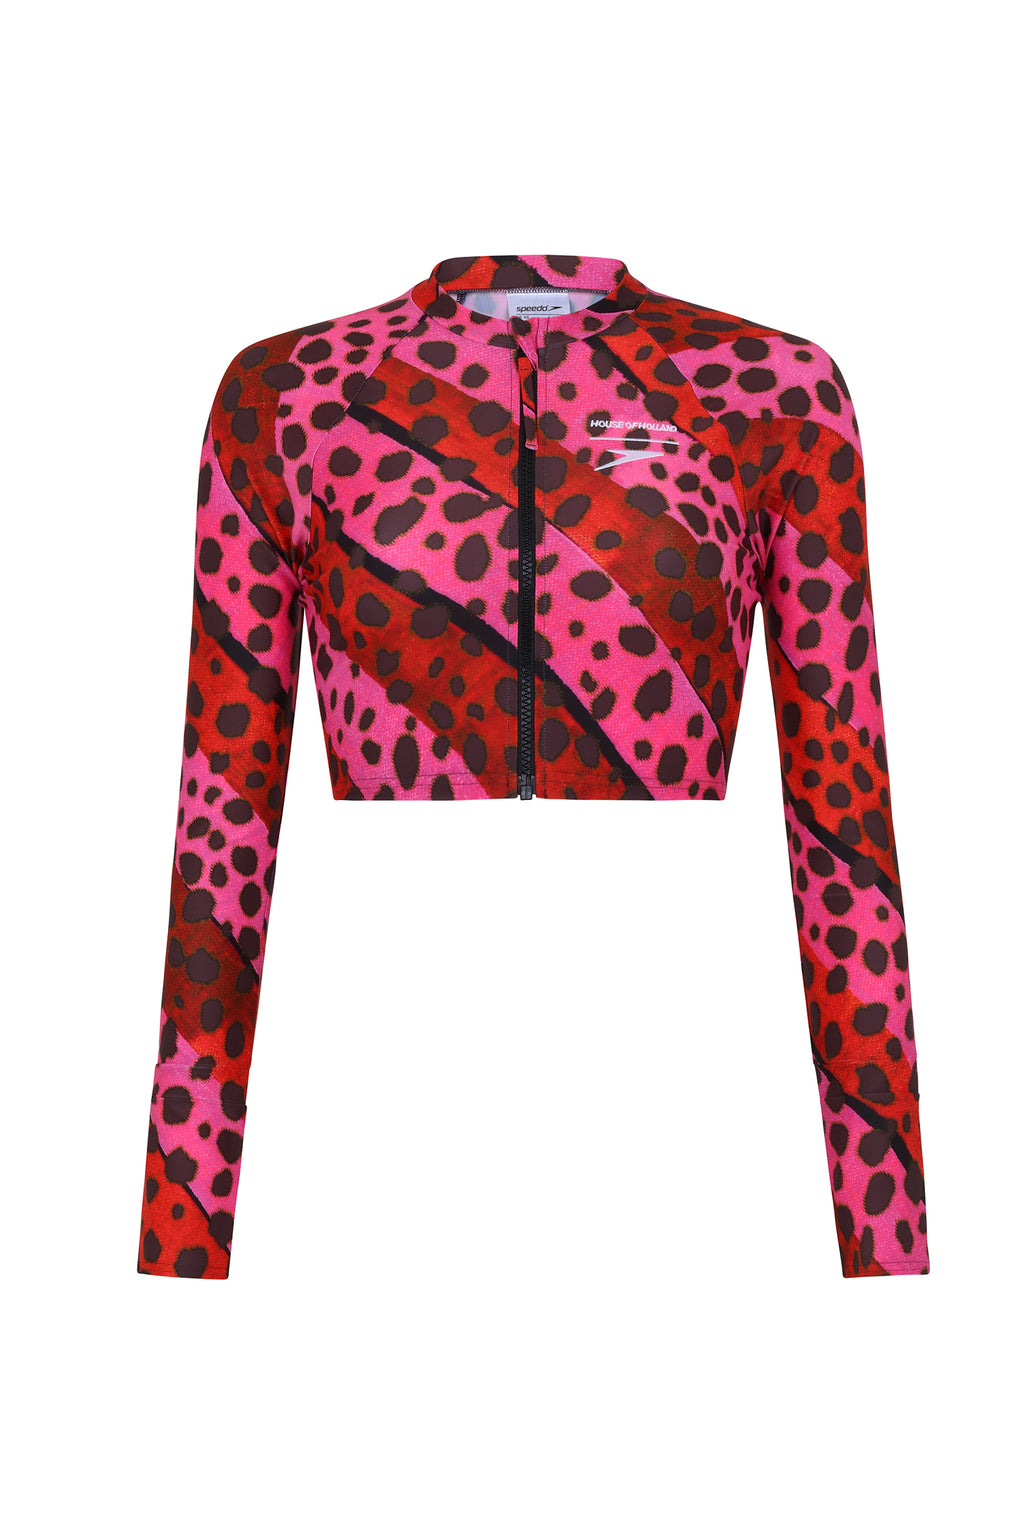 Bright Cheetah Stripe Rash Top